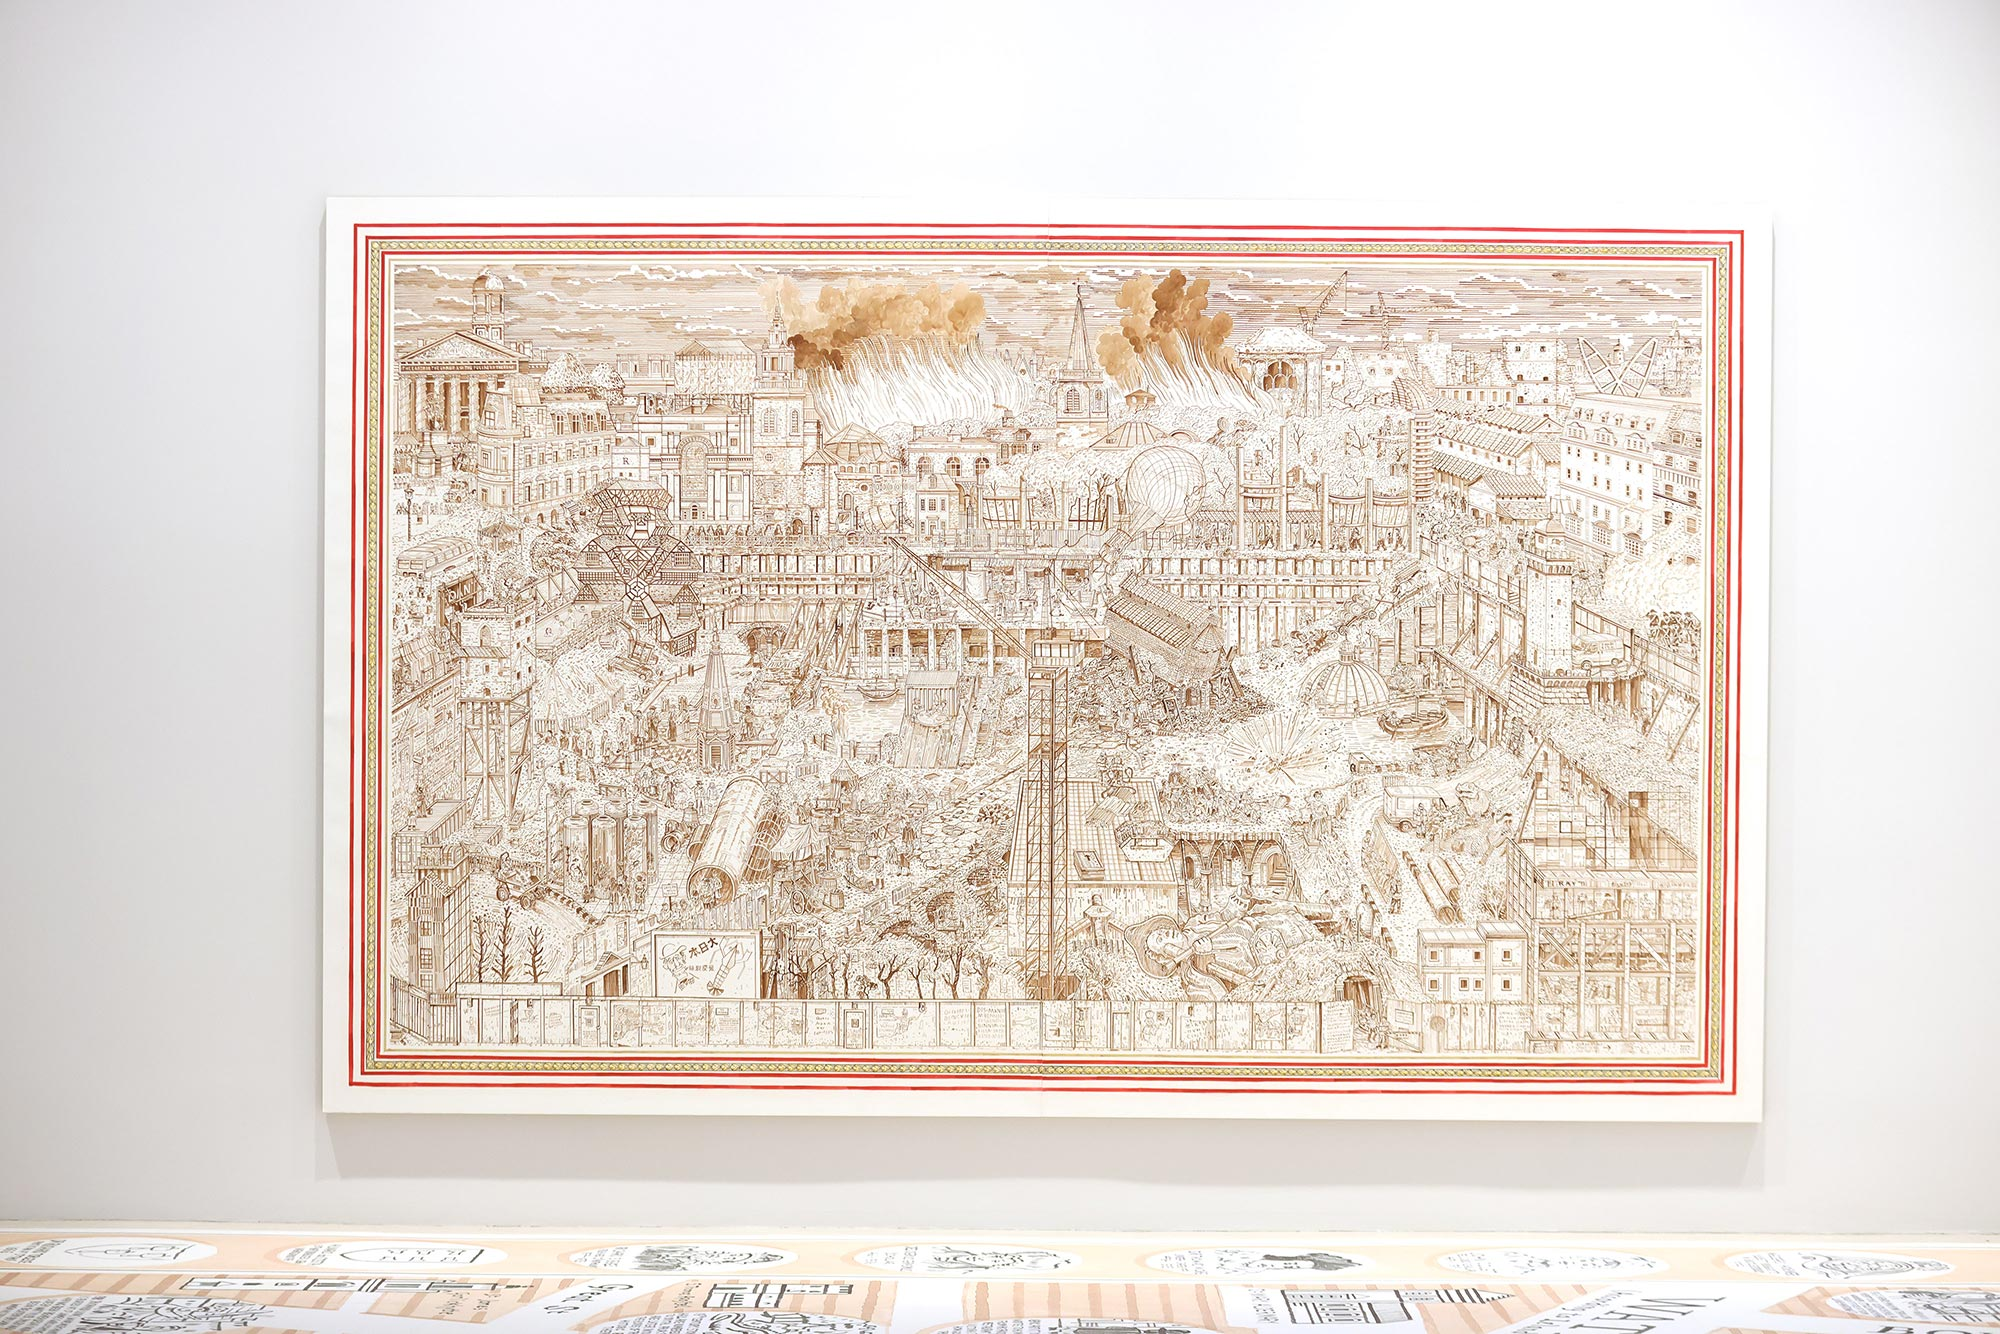 A large wall-filling town scape created by artist Adam Dant being featured at Bloomberg SPACE at the London Mithraeum Museum.